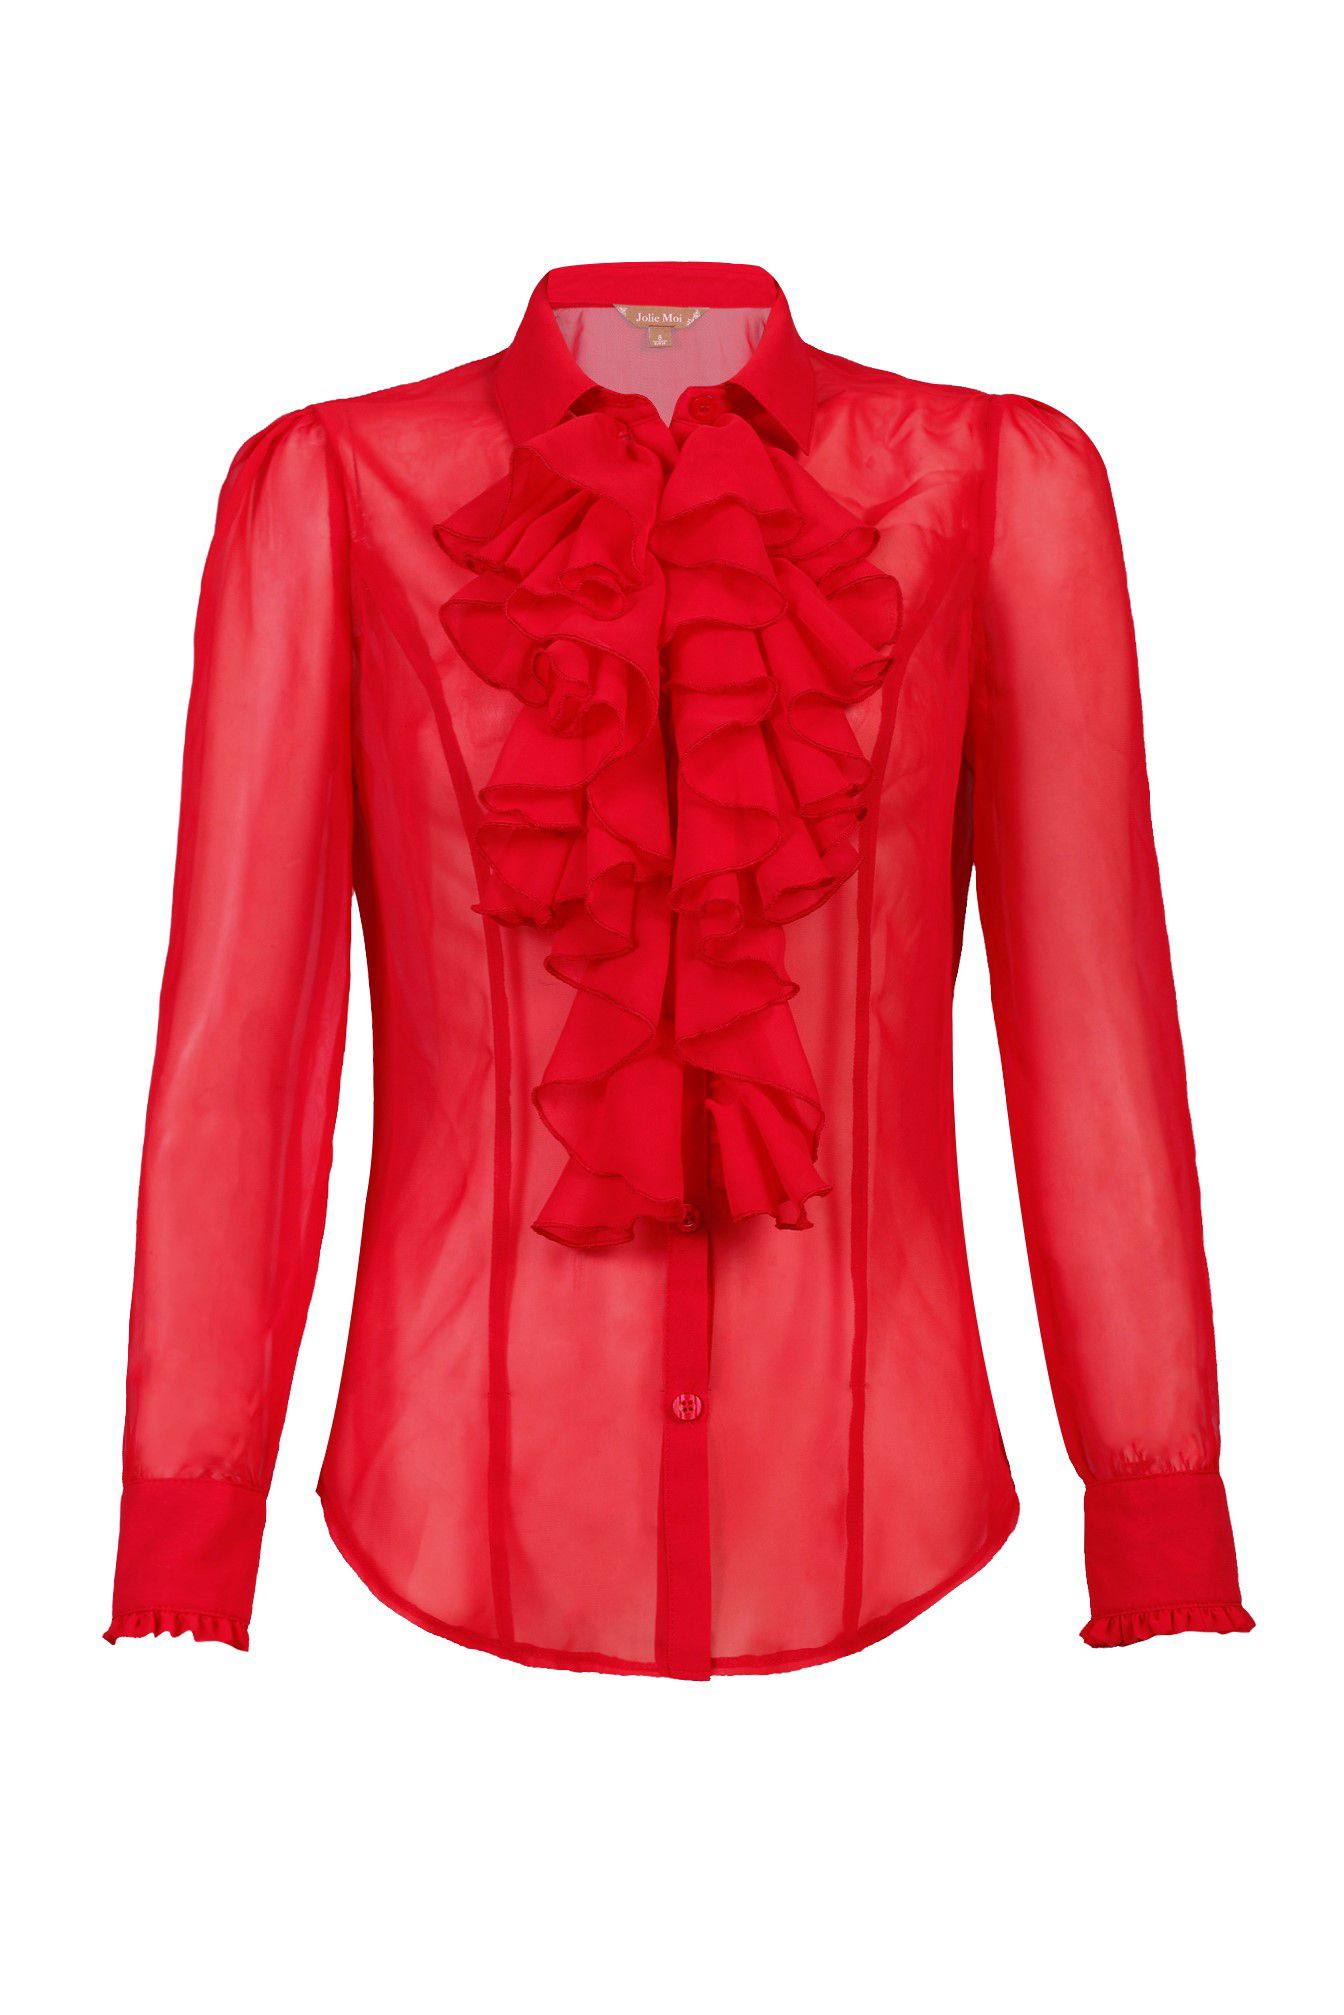 Jolie Moi Plain Chiffon Ruffle Shirt, Red